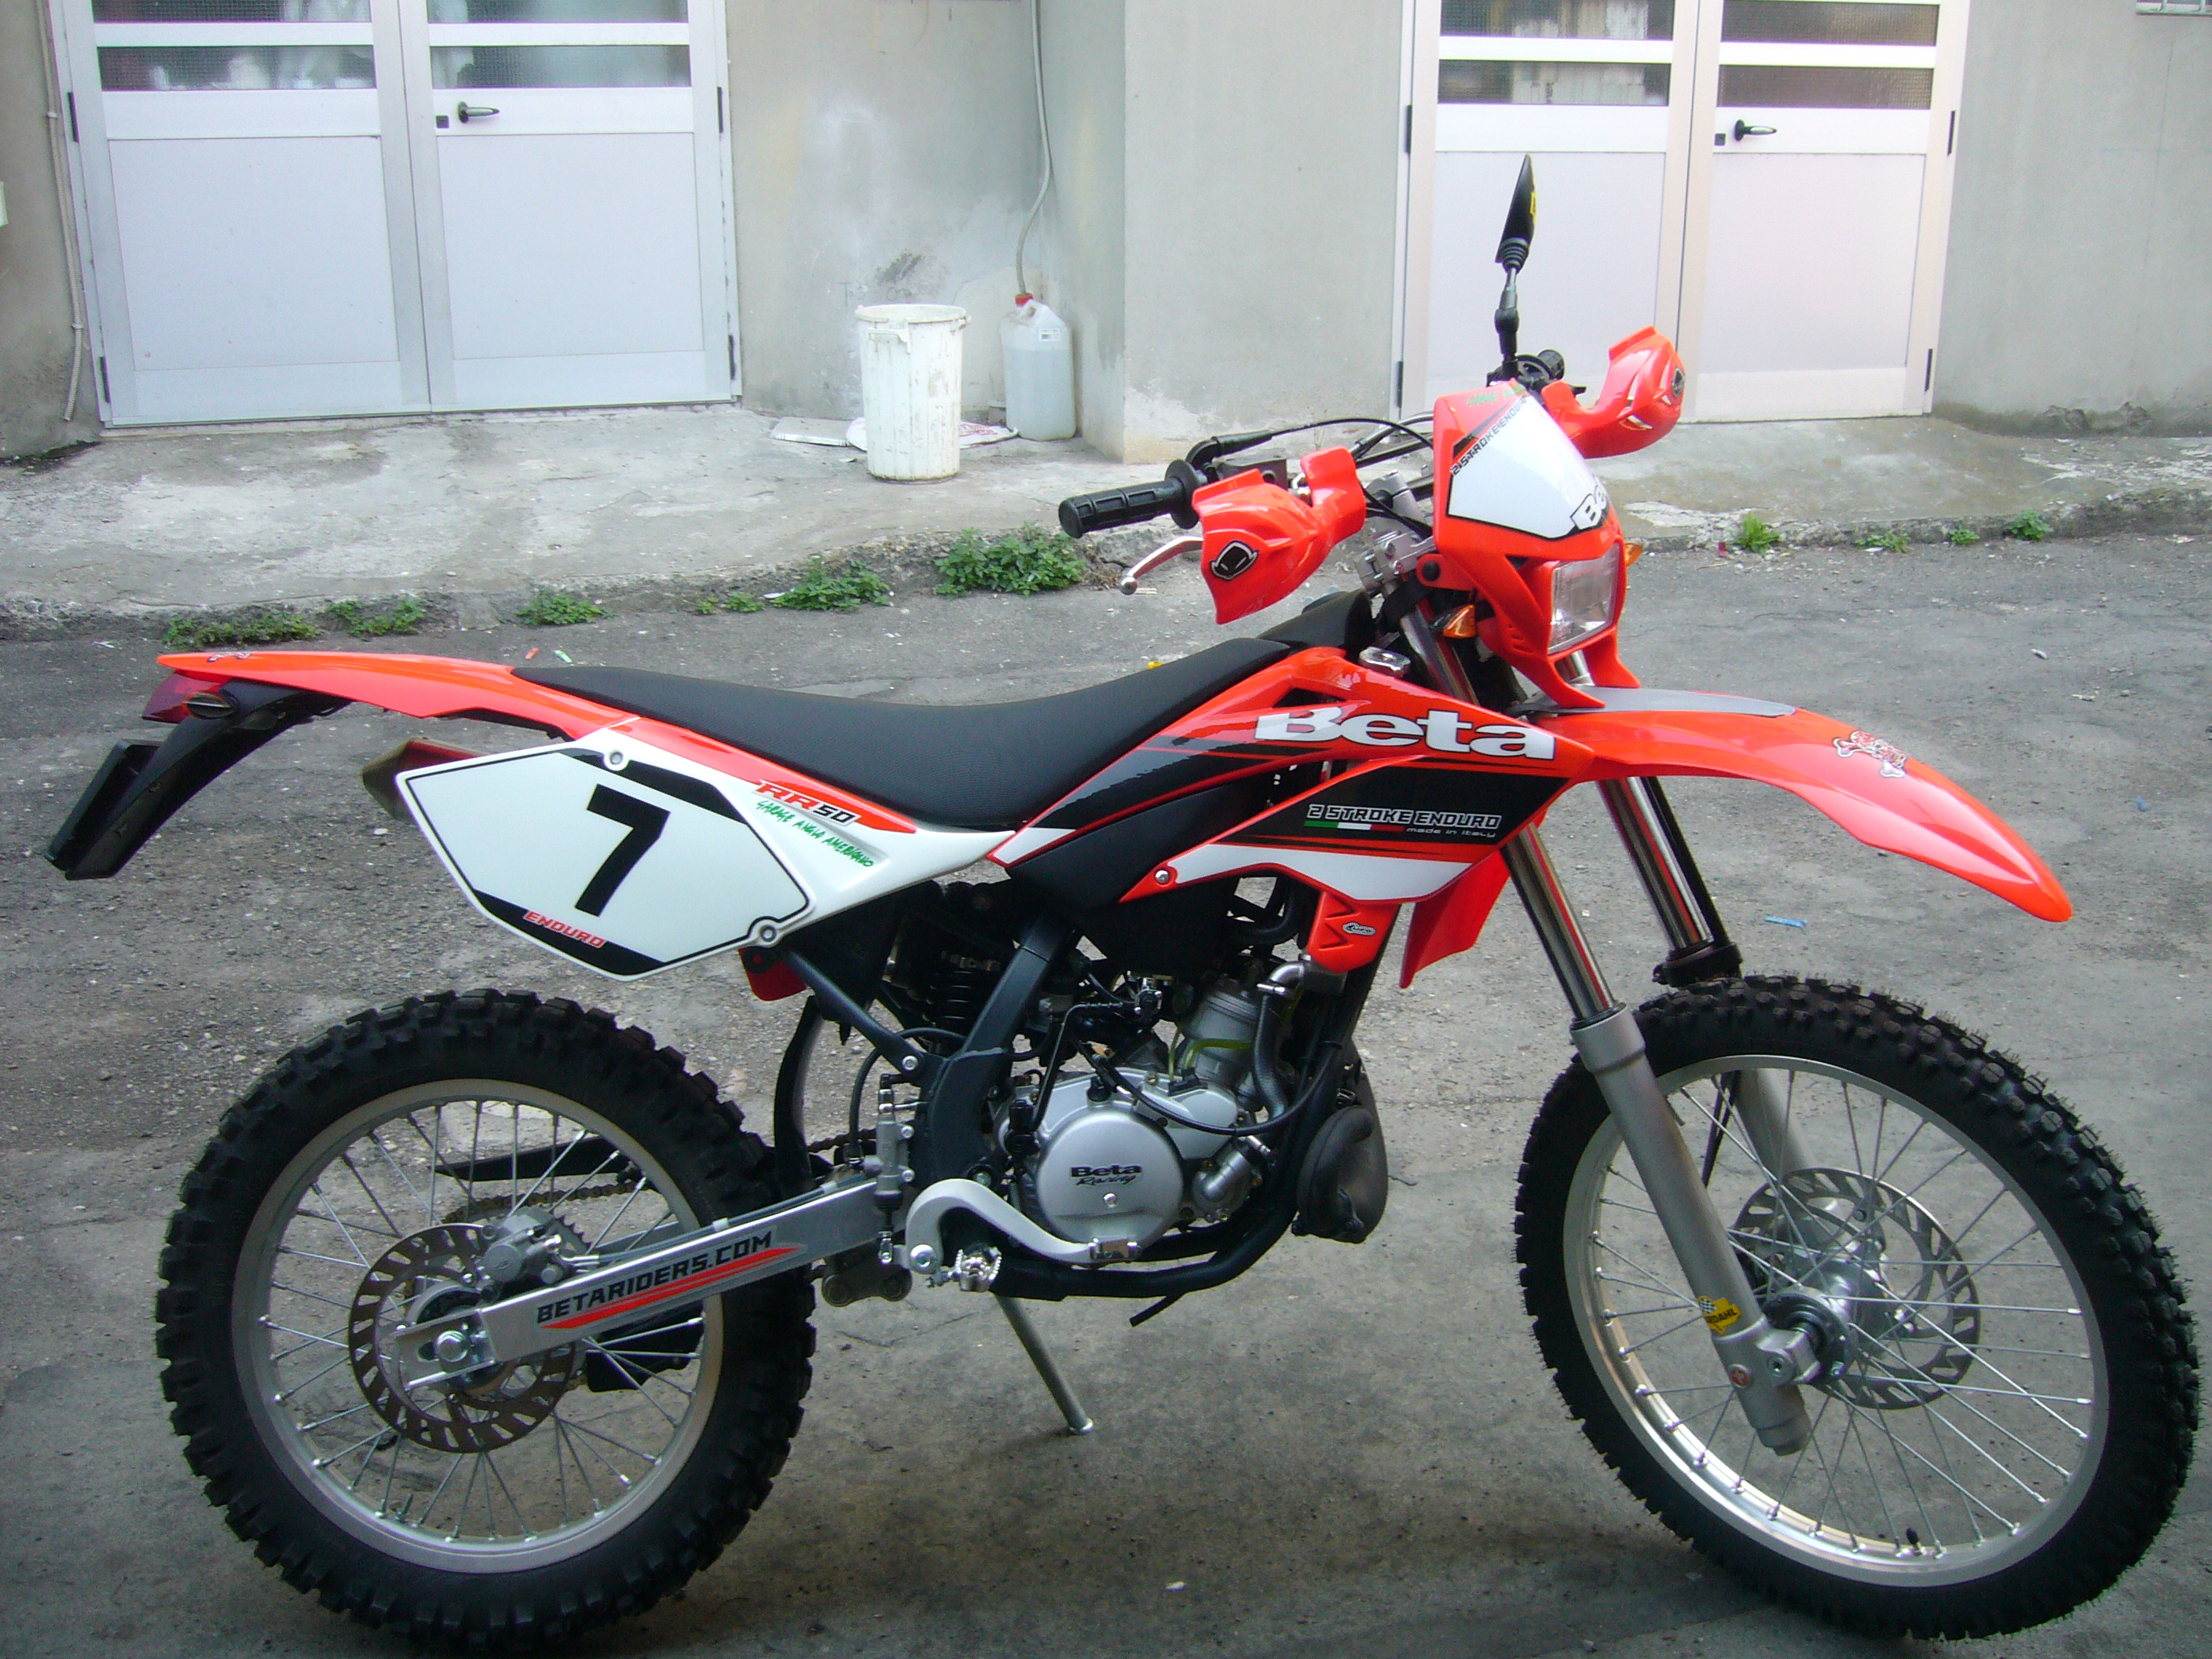 Beta RR 50 Super Motard 1999 images #145072